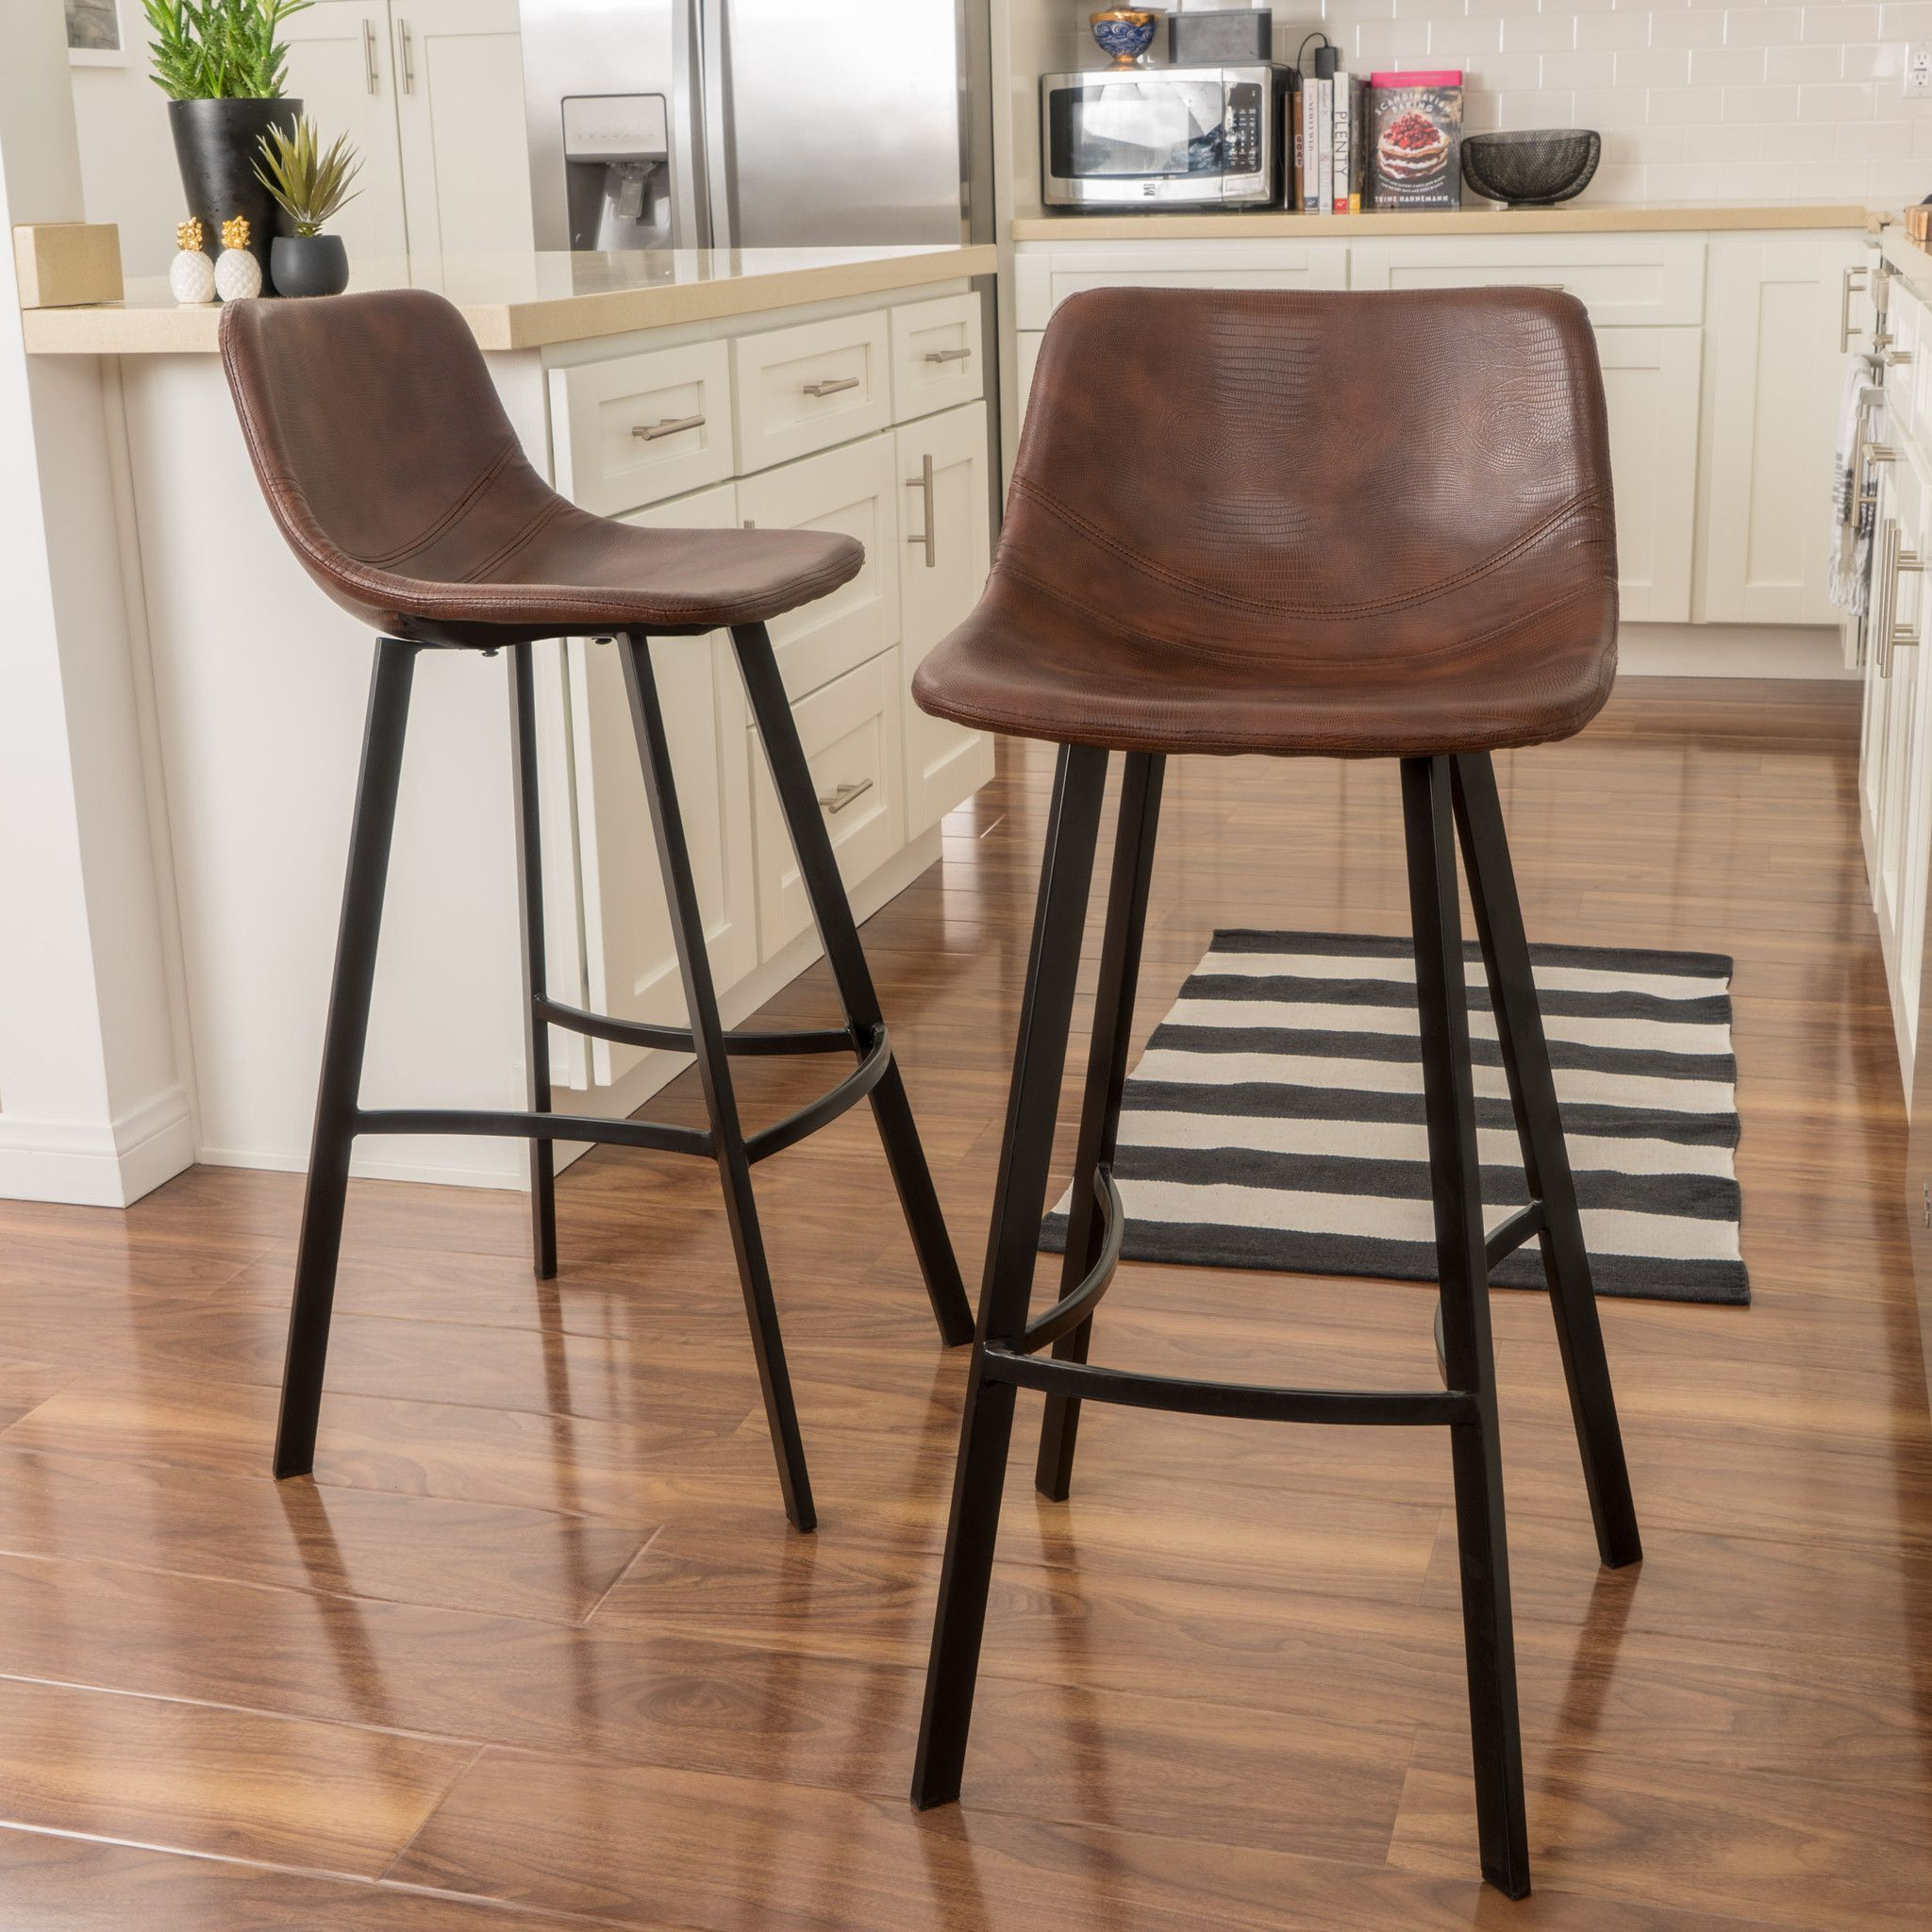 Rex Modern Upholstered Bar Stool Set Of 2 For The Home